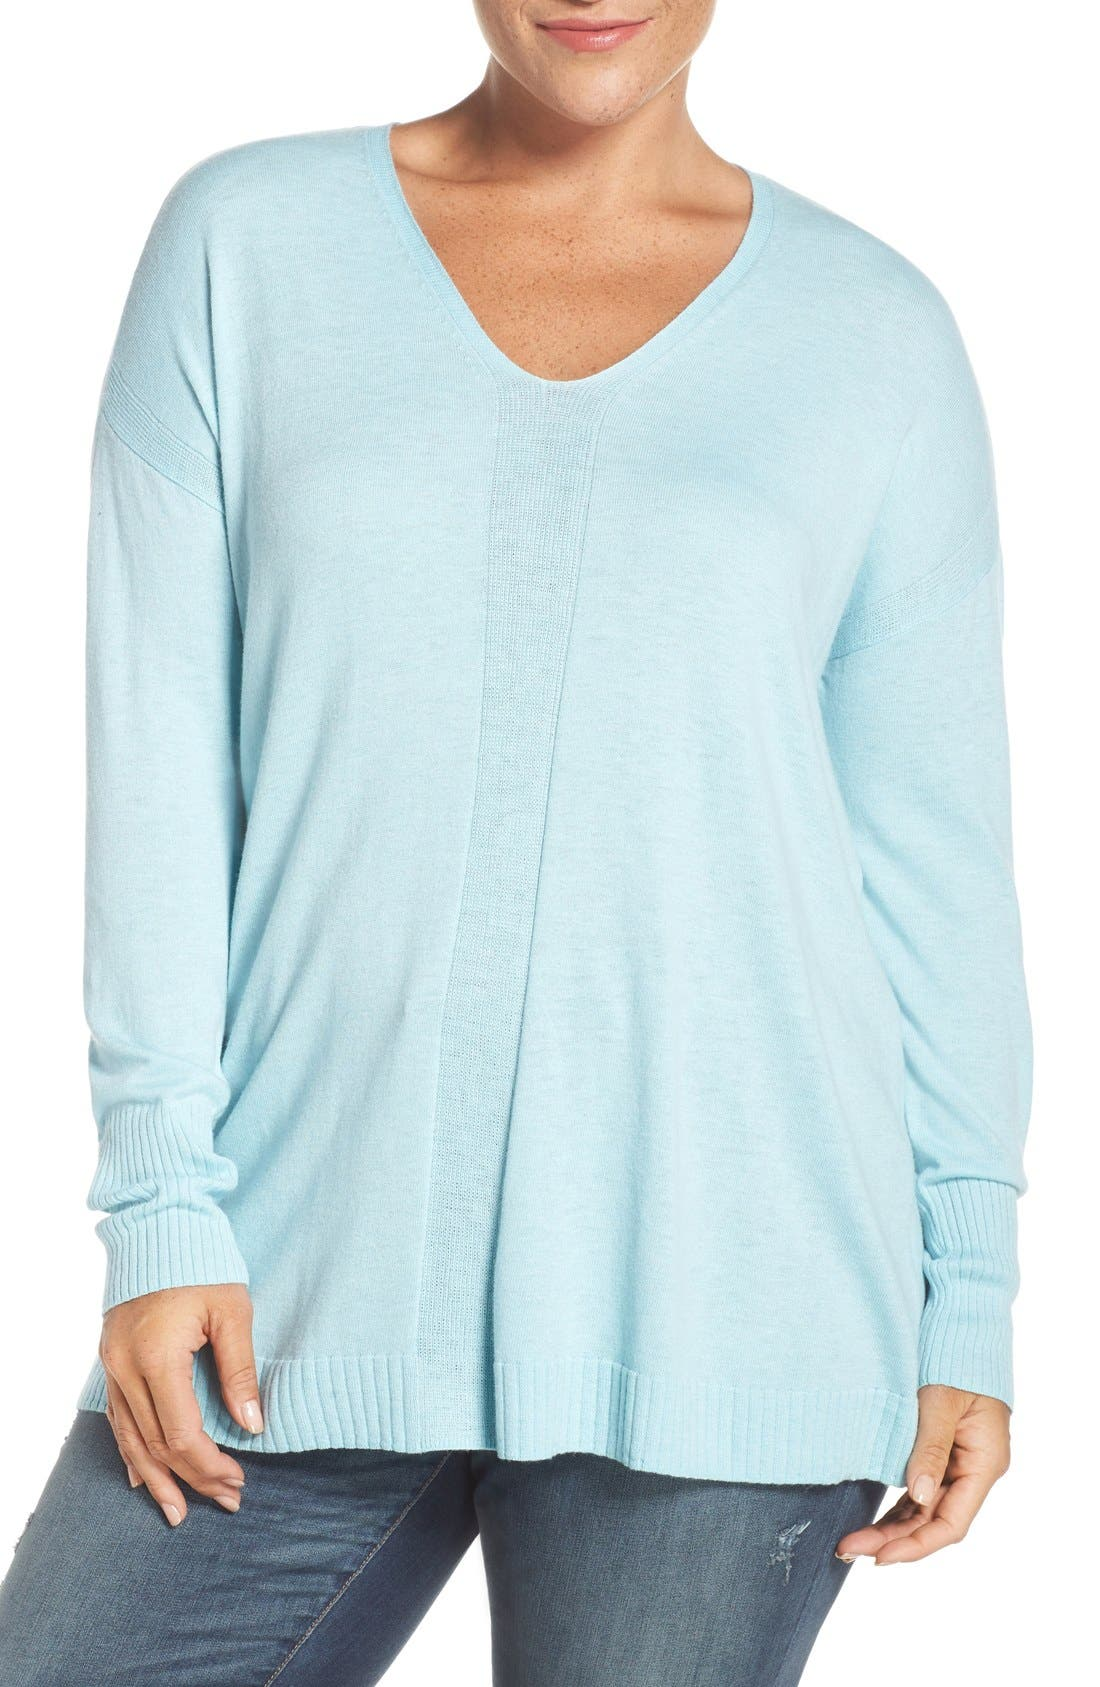 Alternate Image 1 Selected - Sejour V-Neck Sweater (Plus Size)